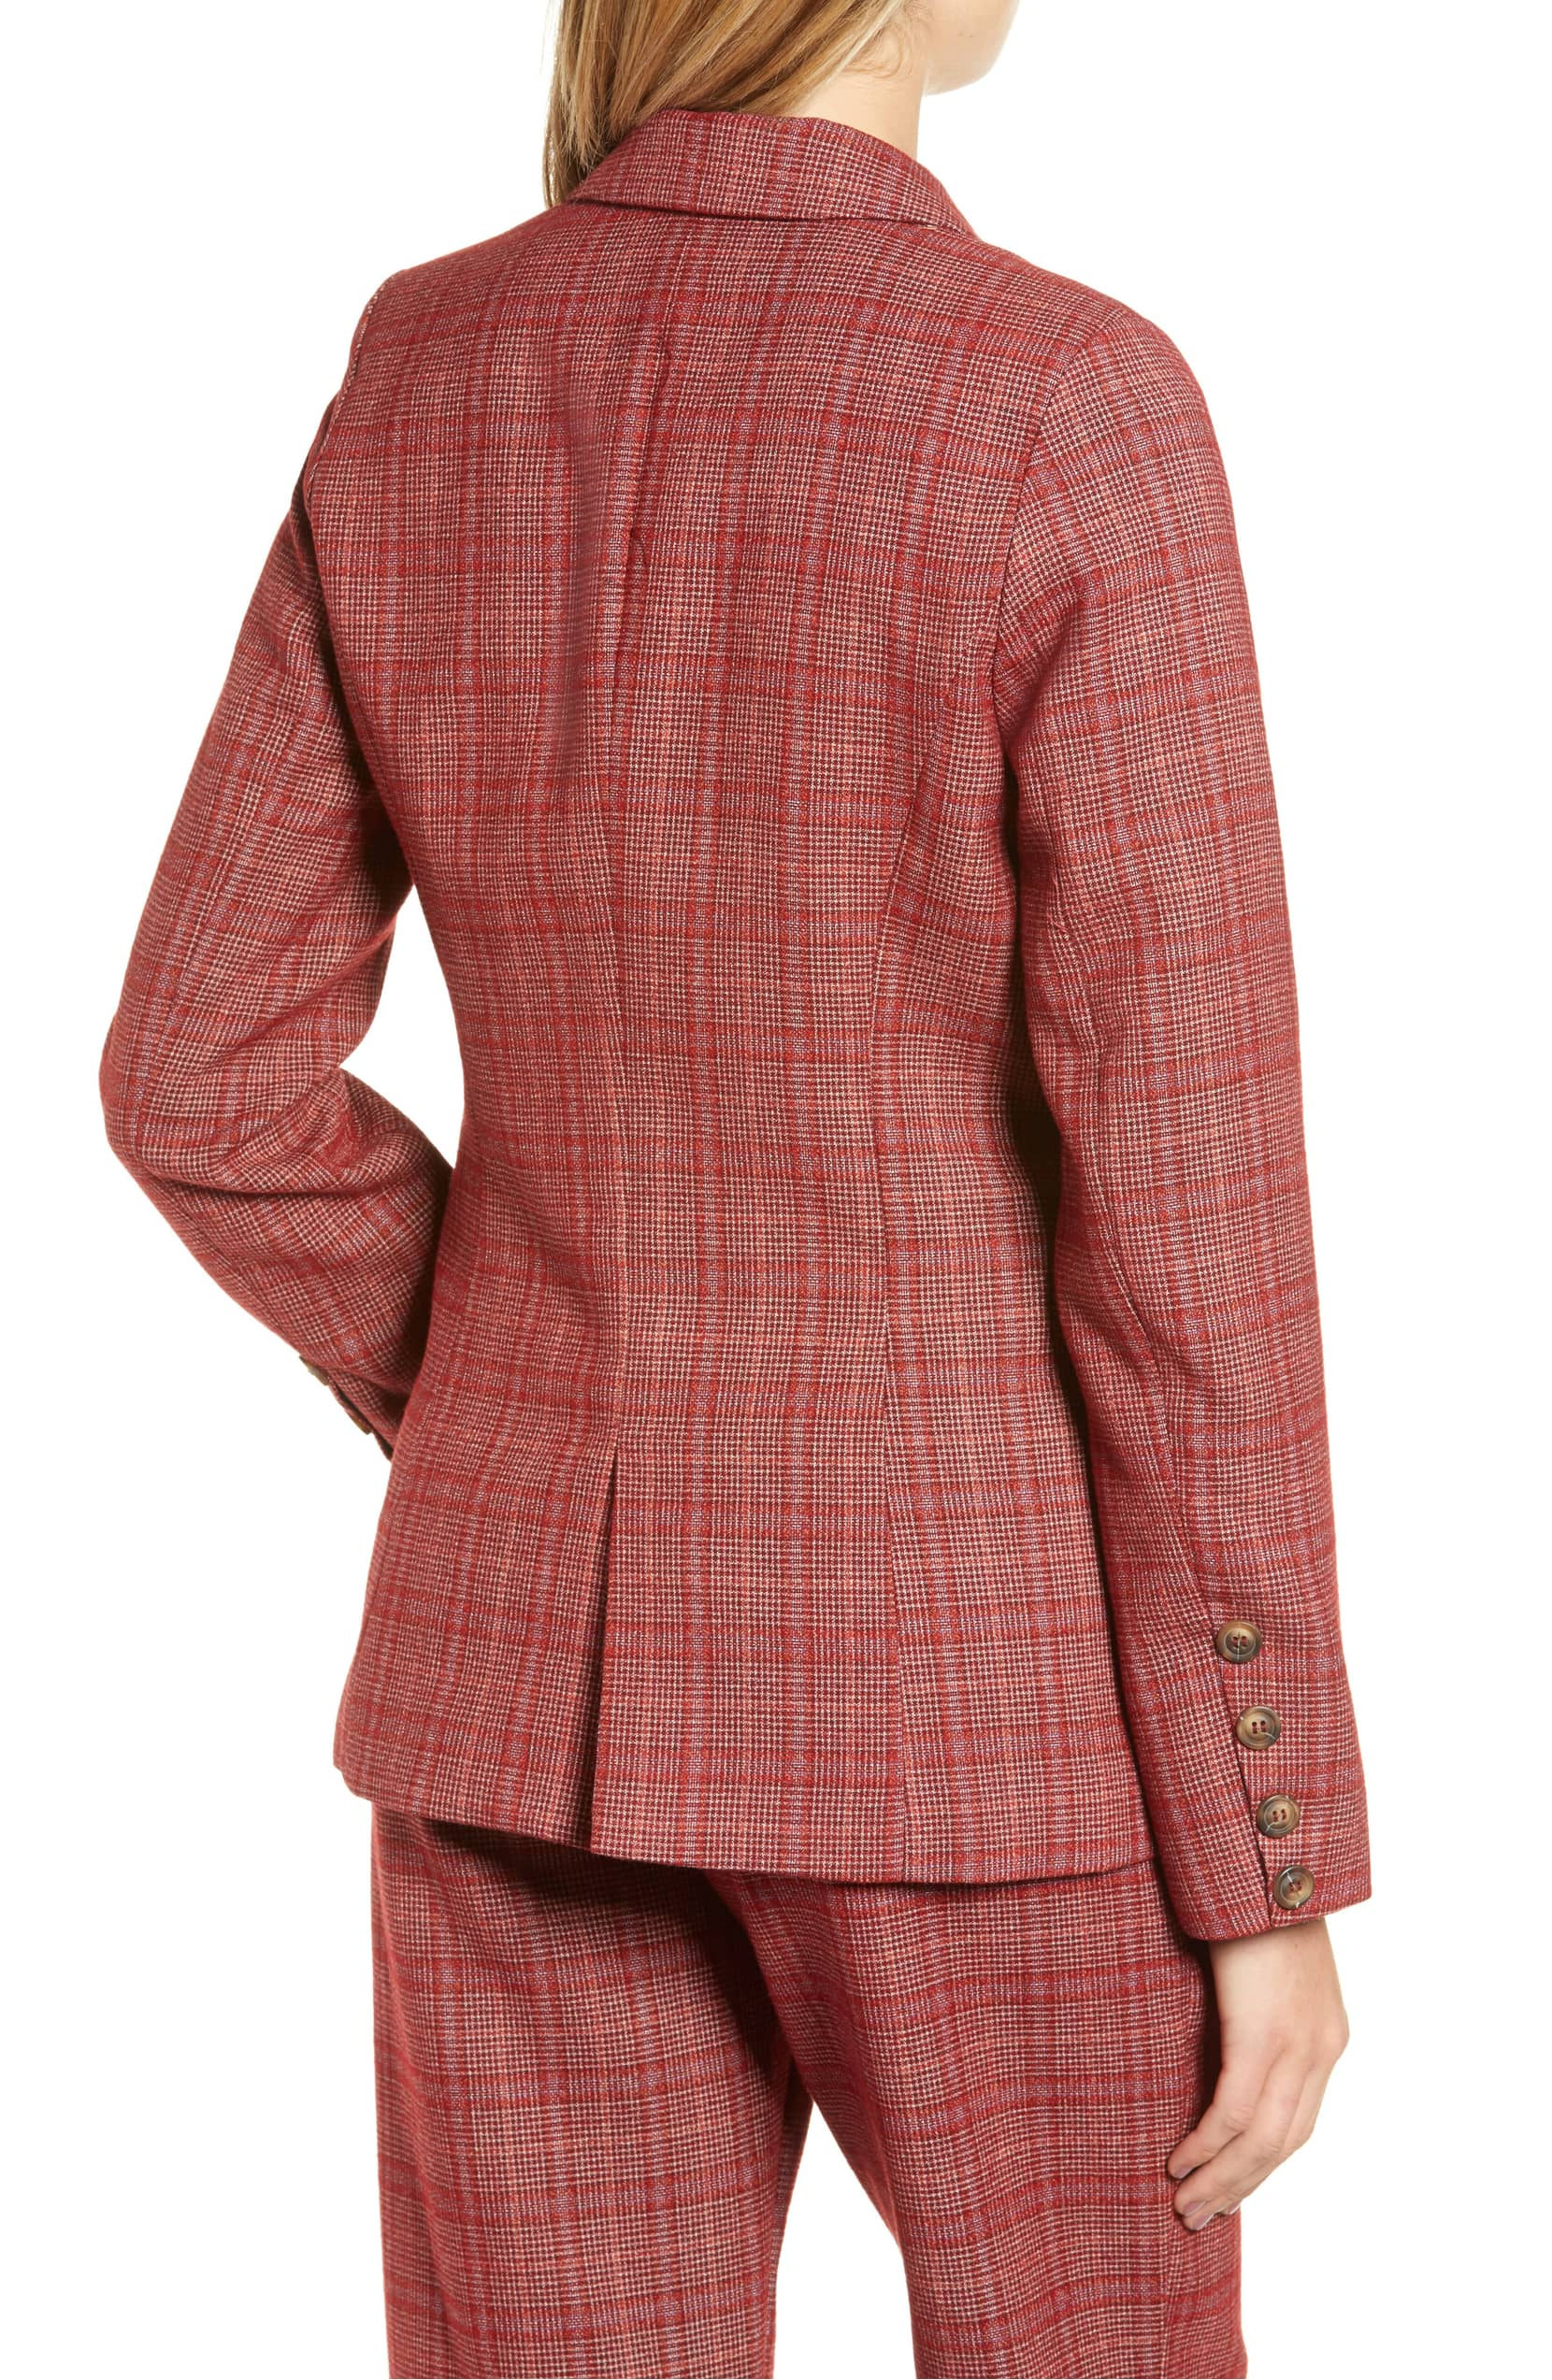 Model is wearing red plaid, double breasted, fitted blazer with brown buttons. The blazer features pockets and a back vent for added movement.